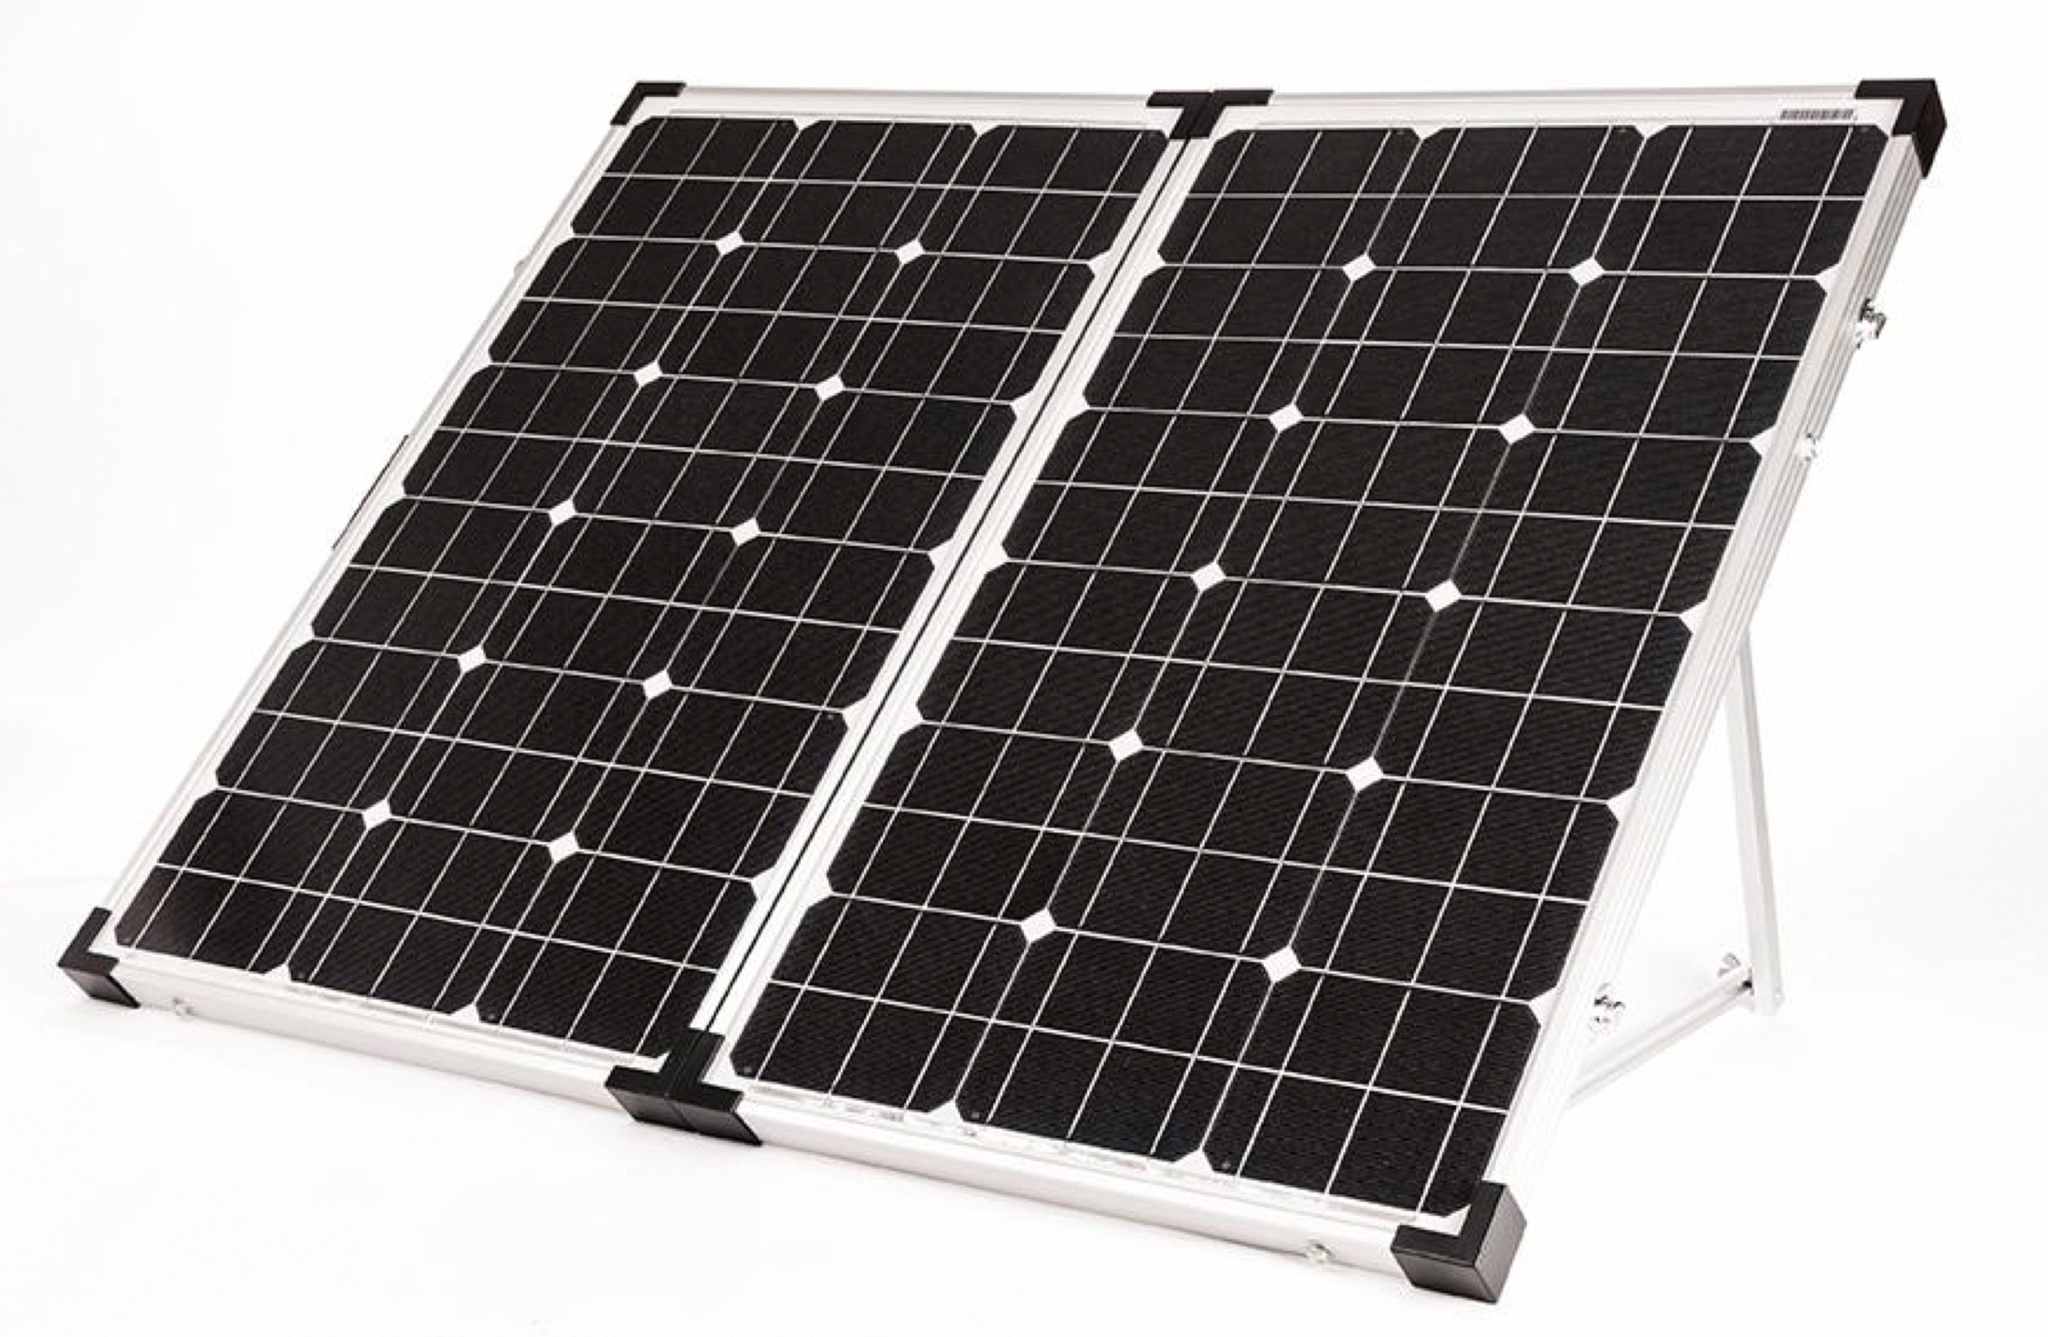 Solar Panel Kit 120 Watt From Airstream Life Store Solarenergyprojects Solarpanels Solarenergy So In 2020 Solar Panel Kits Solar Panel Installation Best Solar Panels